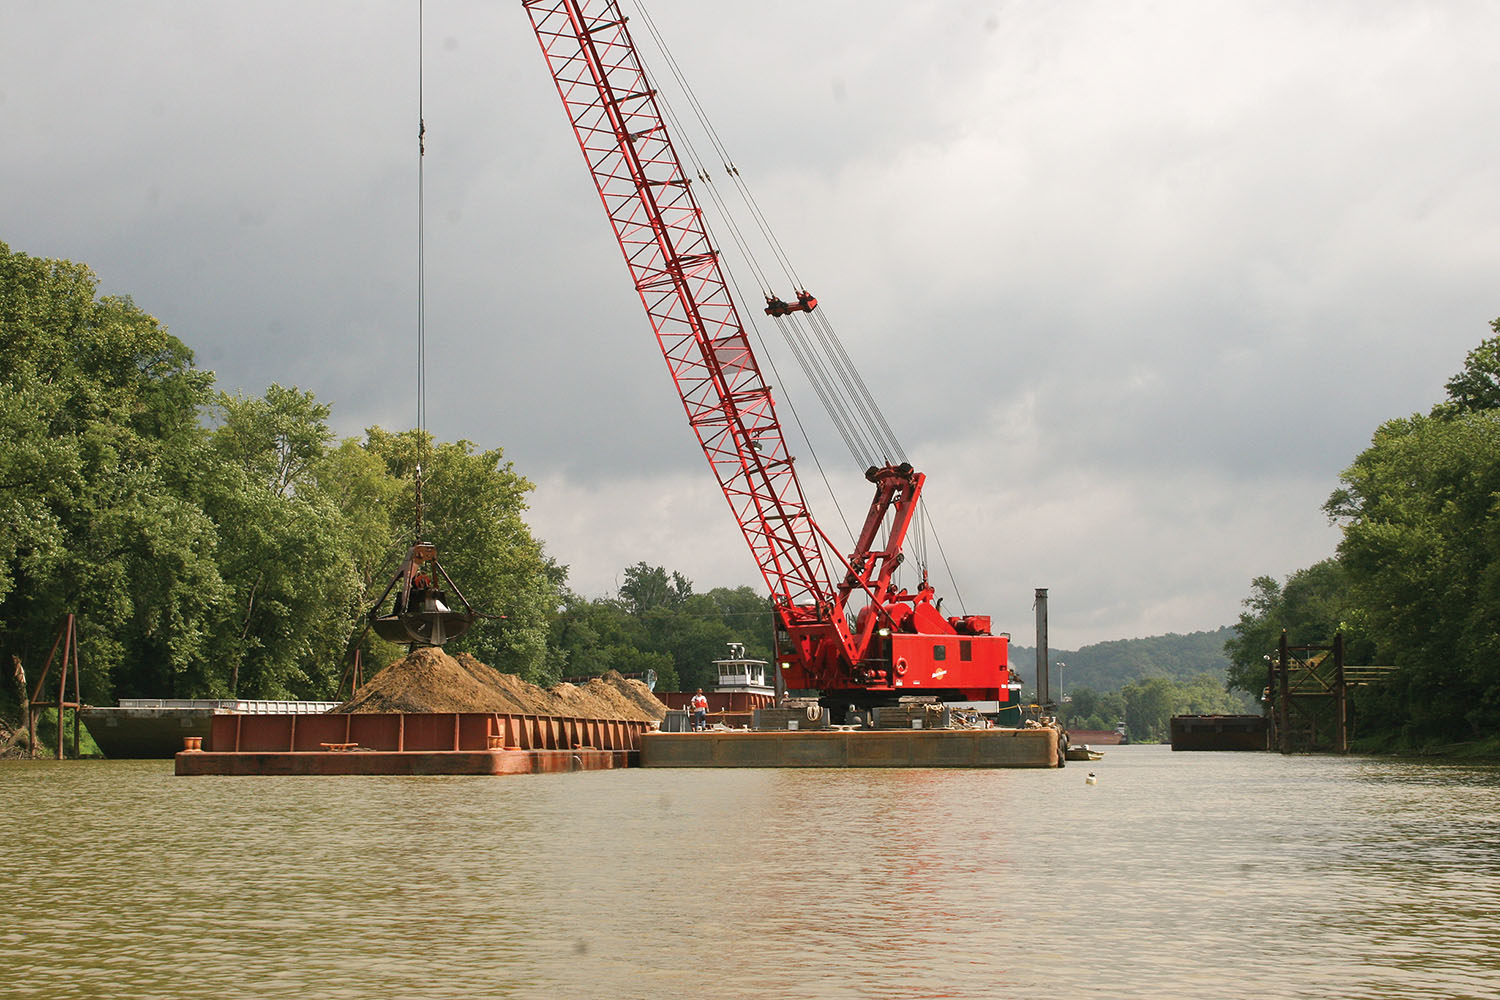 An Amherst Madison dredge working on the Big Sandy River.